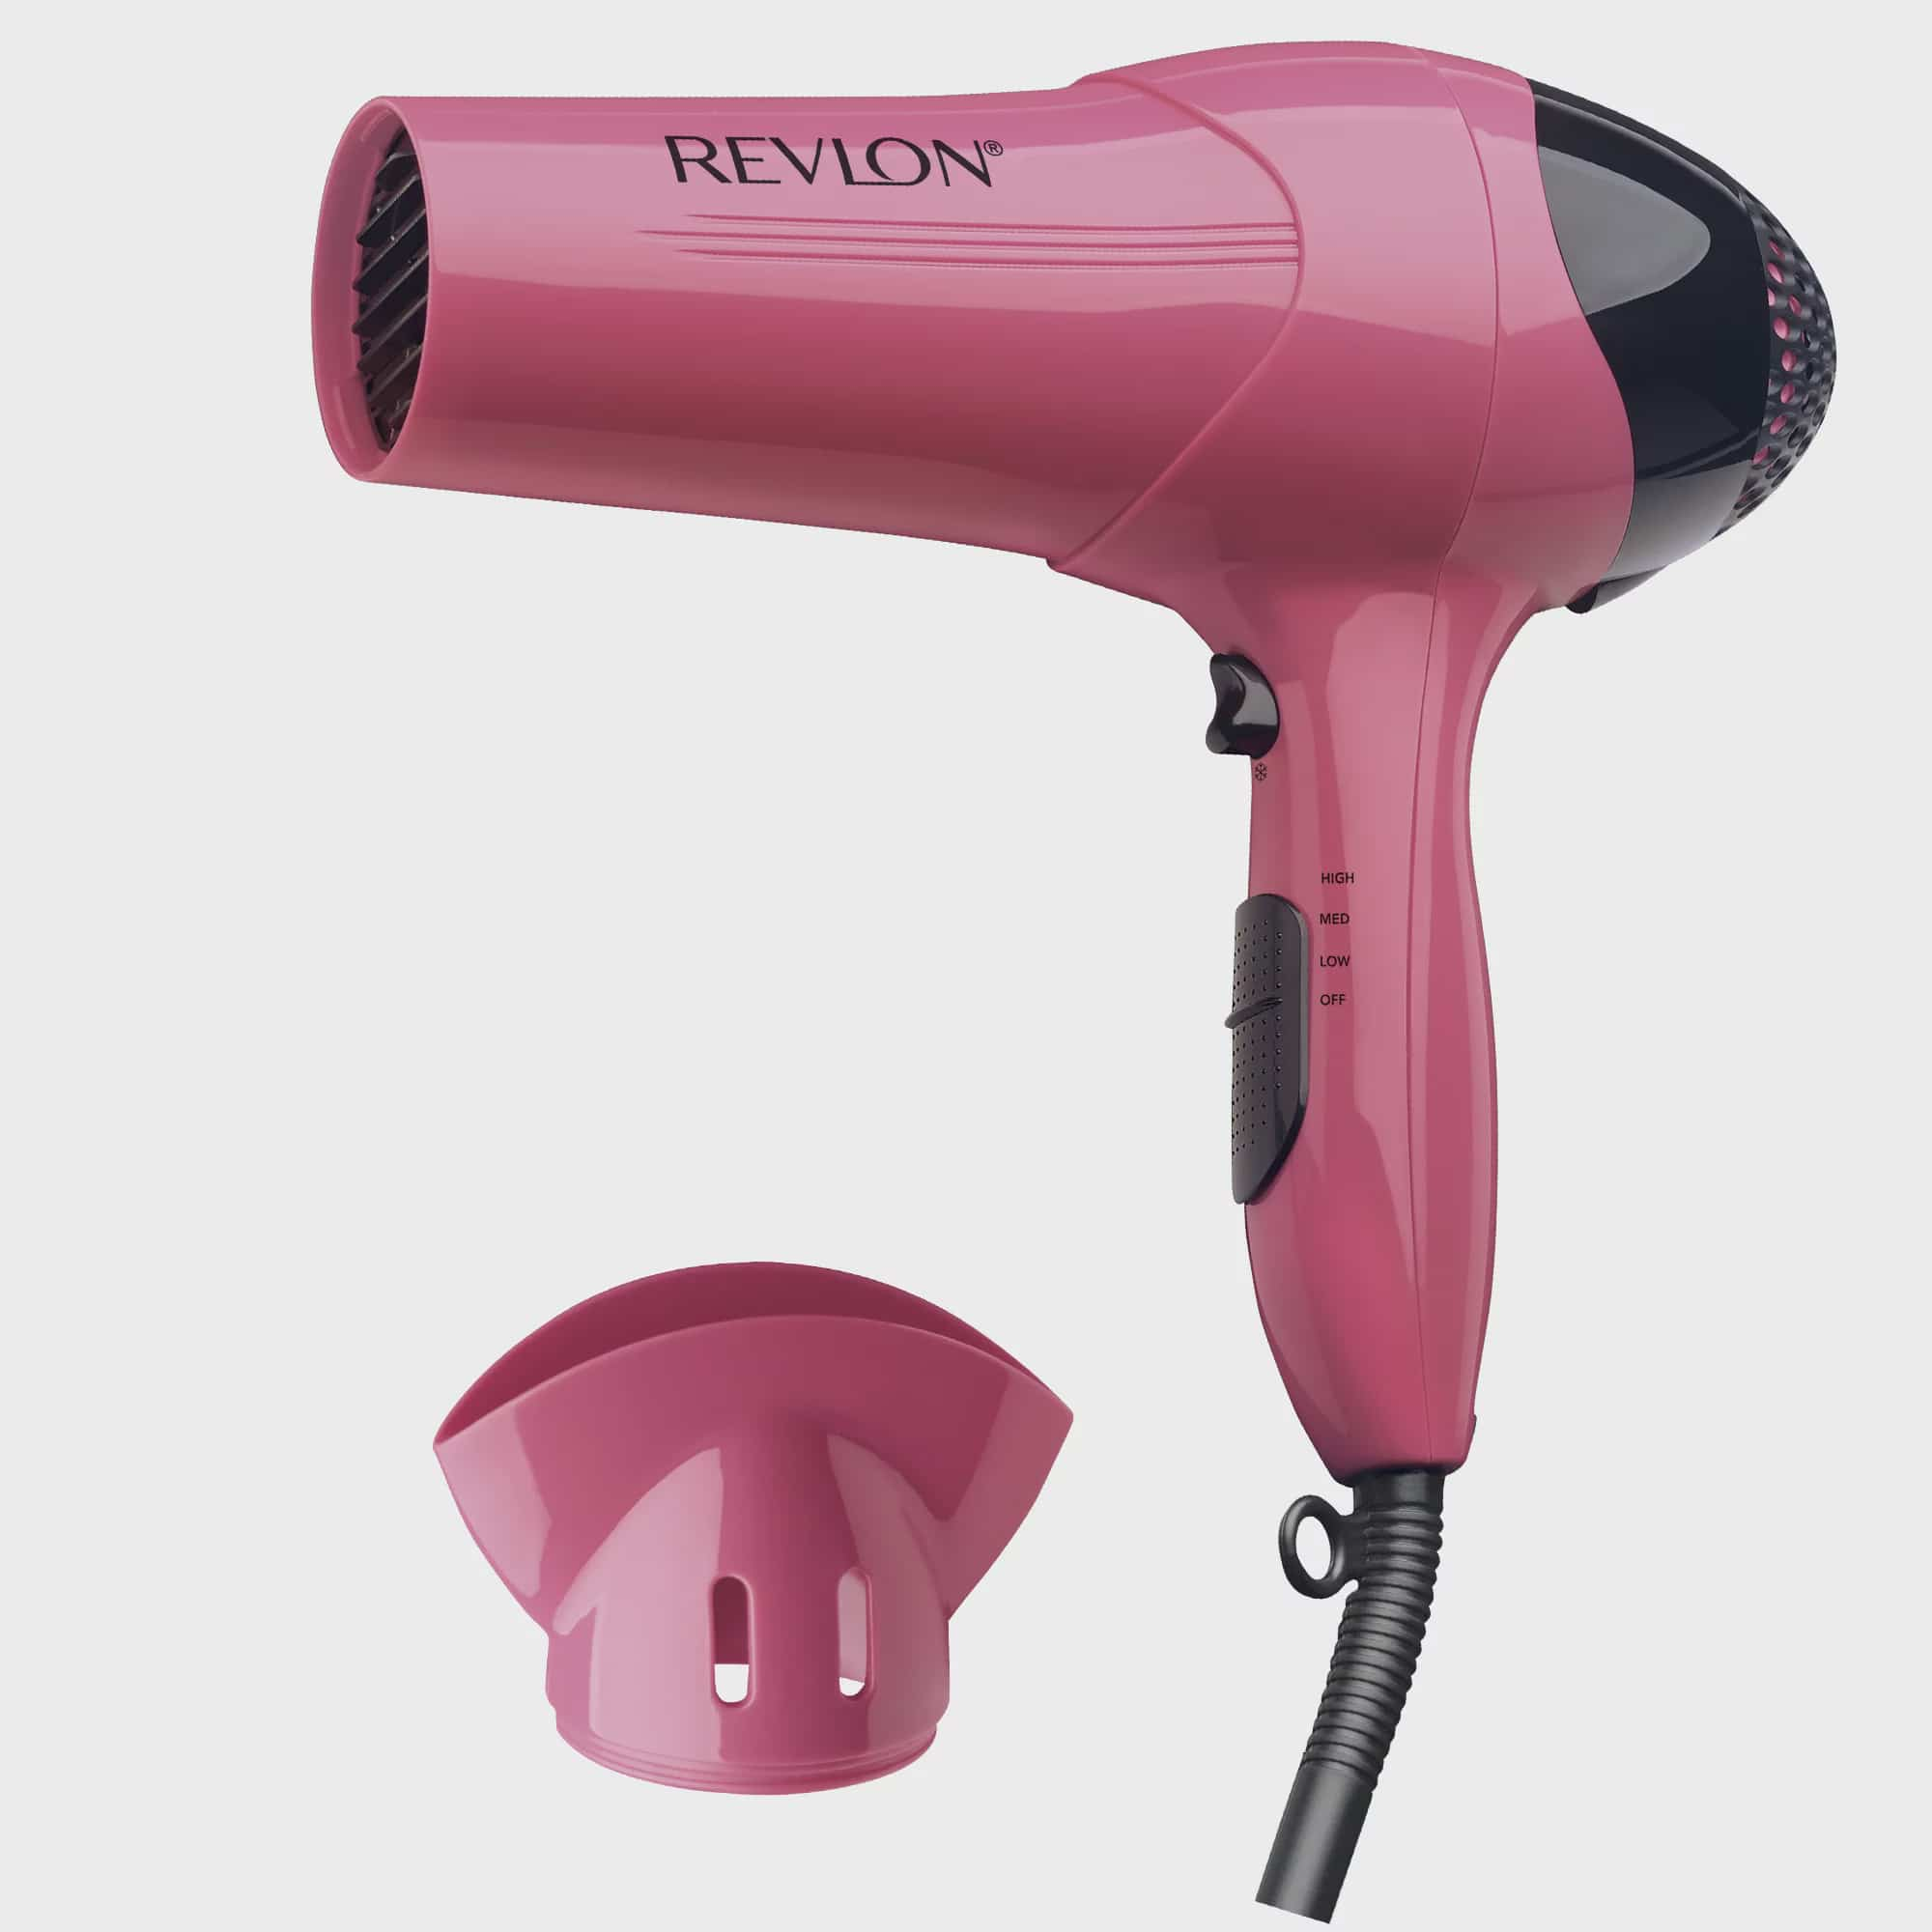 Revlon Essentials Lightweight RV474 Light Hair Dryer, Pink